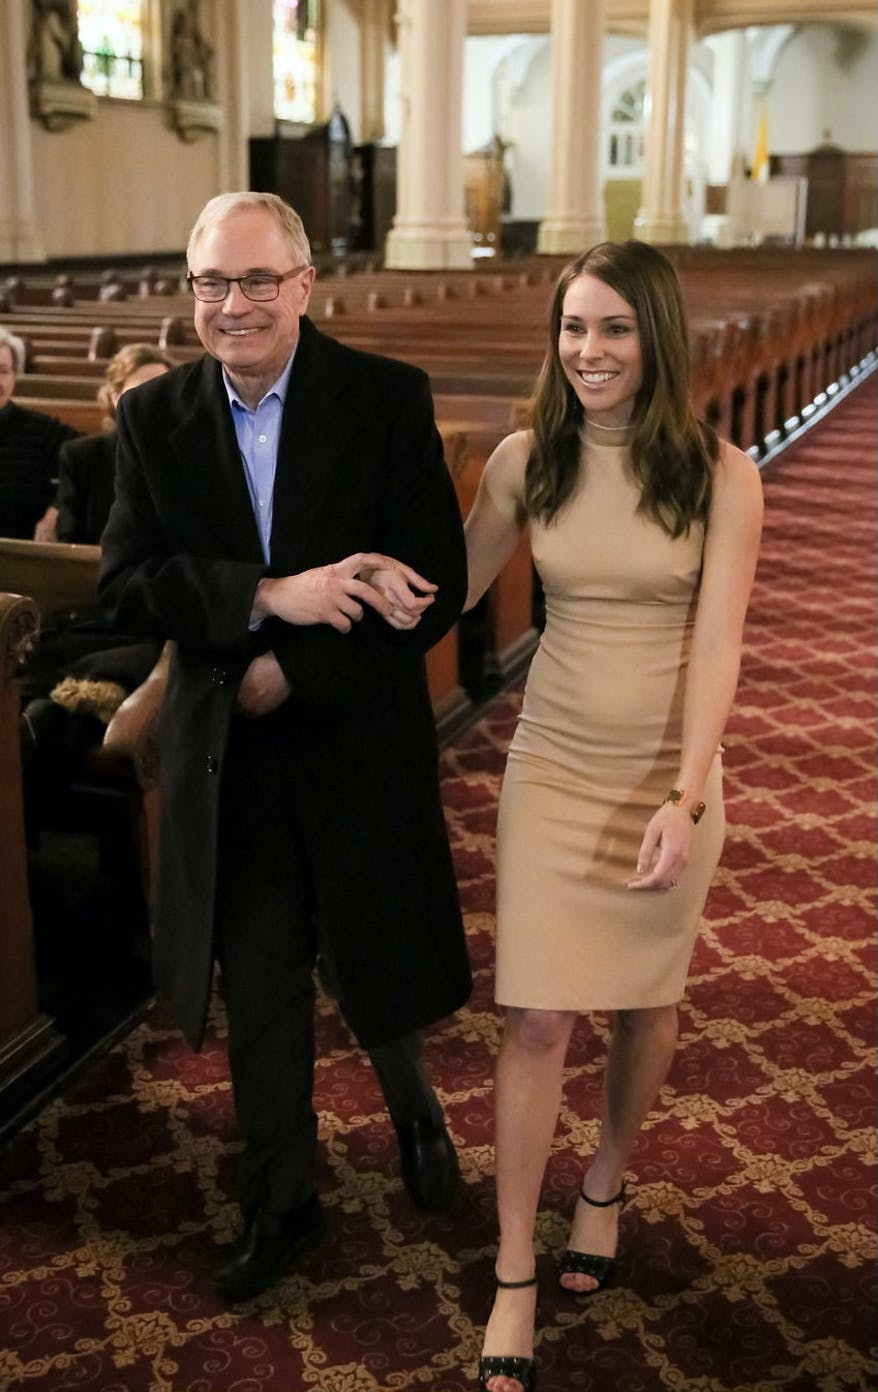 Dr. Rudy Wagner and his daughter Christine